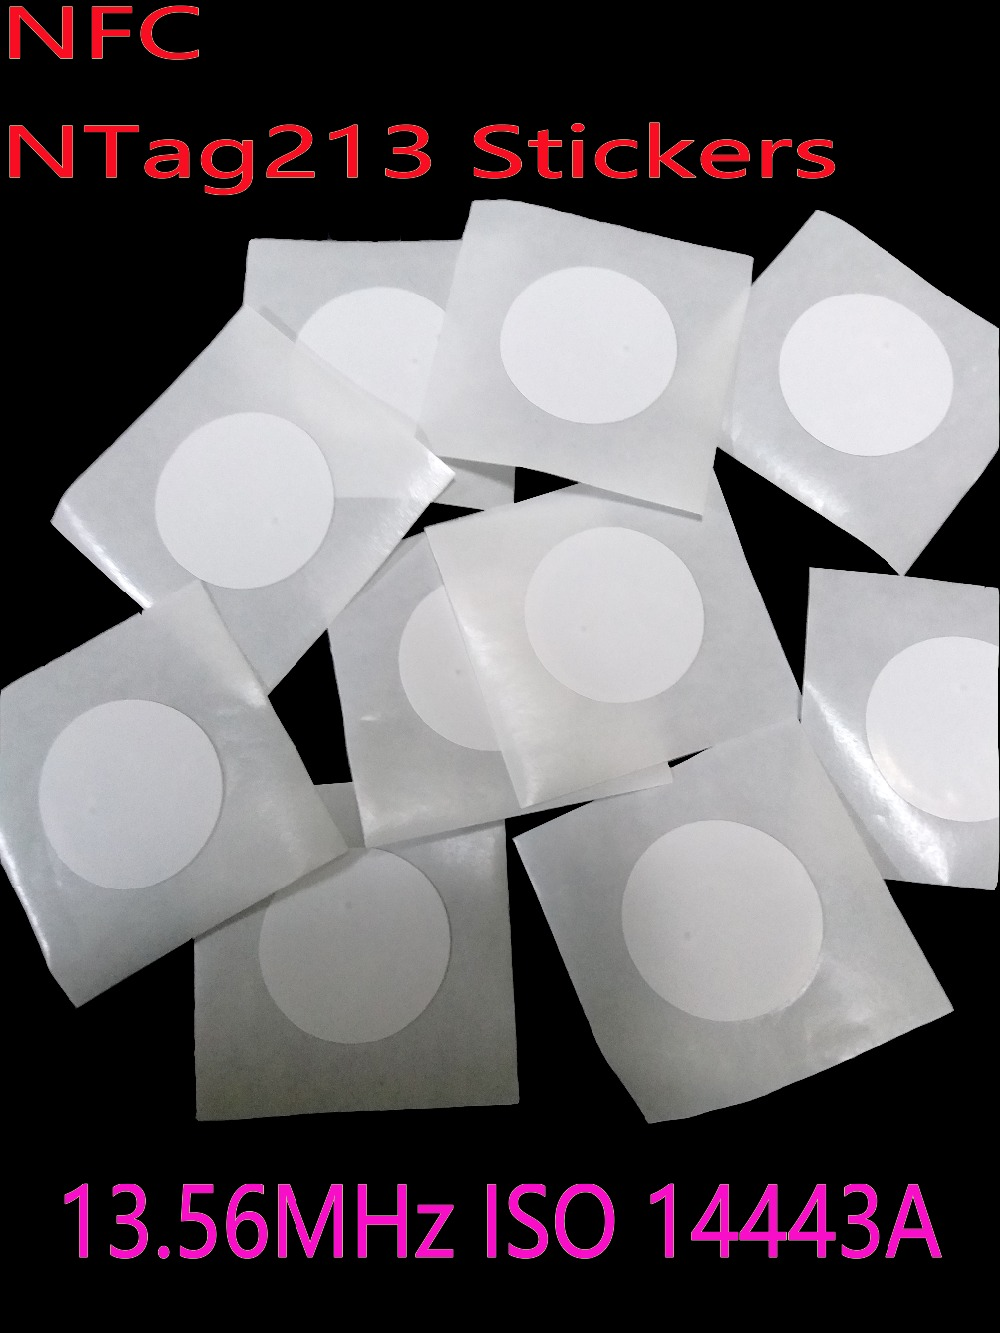 10pcs/Lot NTAG 213 NFC Tags Rewritable Ntag213 NFC Tag Sticker 13.56MHz ISO14443A 25mm All NFC Phone Available Adhesive Labels 10pcs 21g 14g 10g 7g 5g metal fishing lure fishing spoon silver and gold colors free shipping